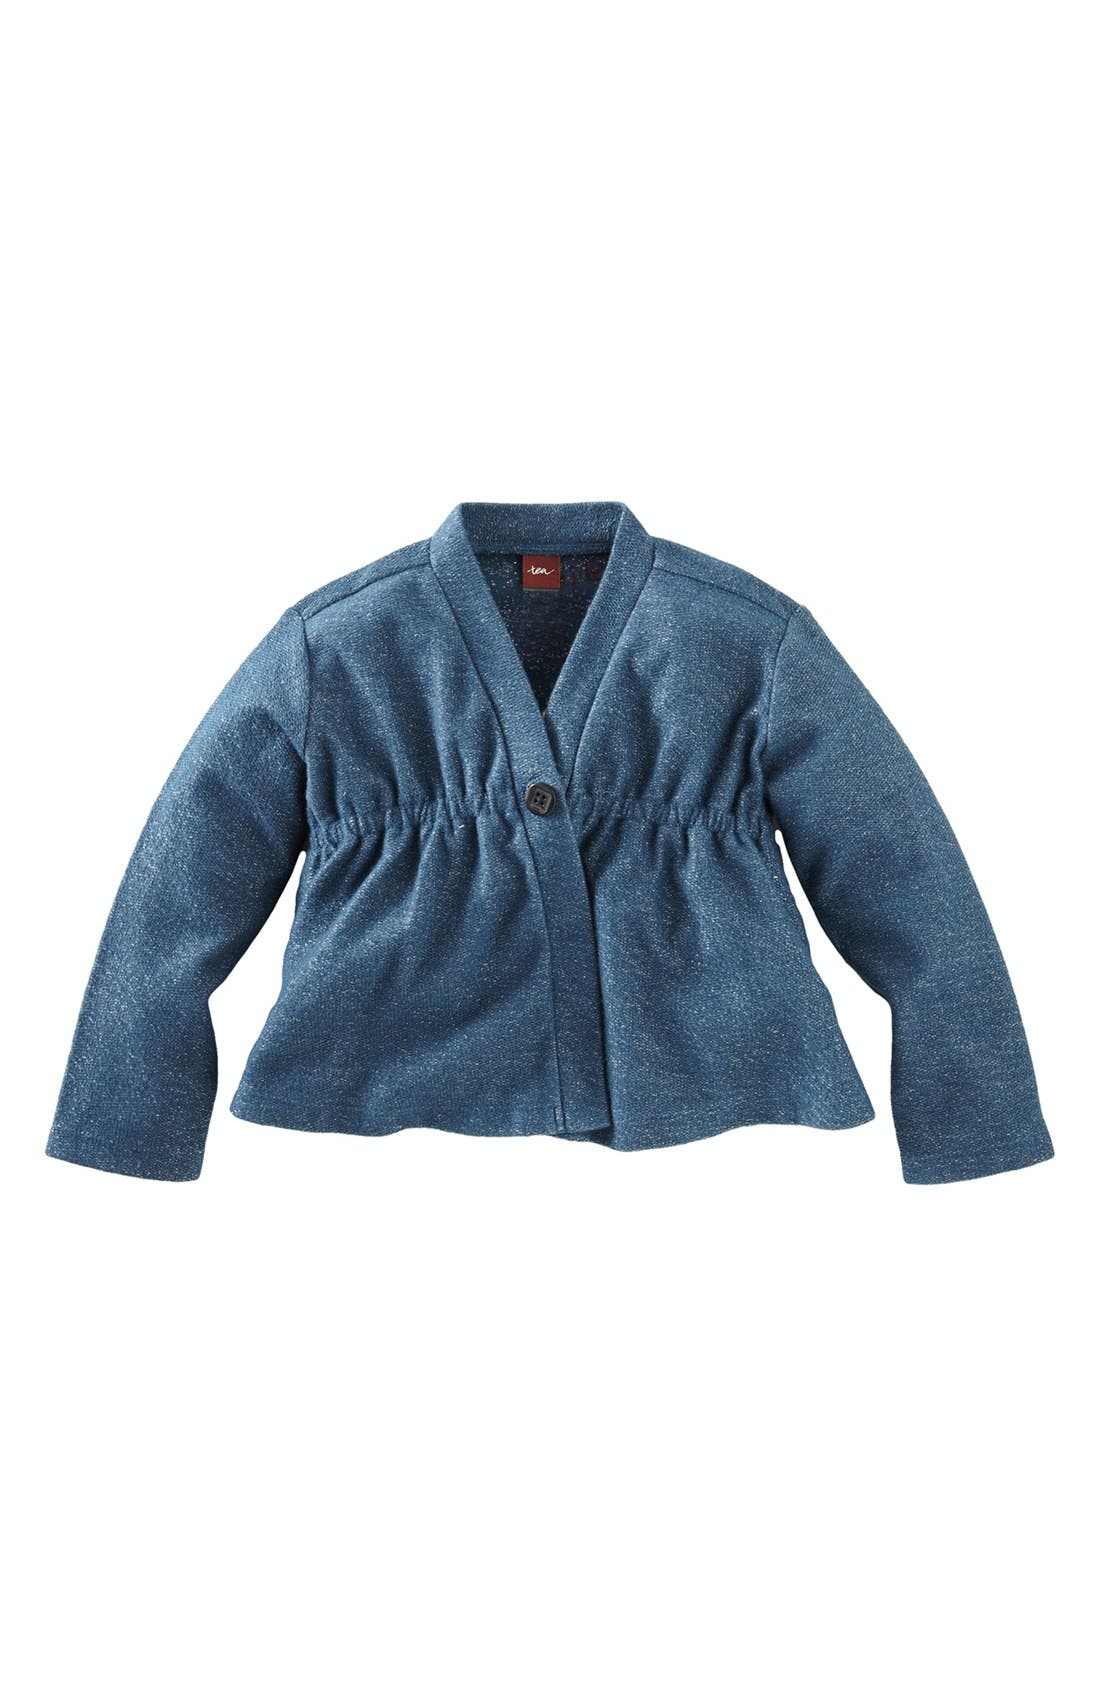 Alternate Image 1 Selected - Tea Collection Sparkly French Terry Jacket (Little Girls & Big Girls)